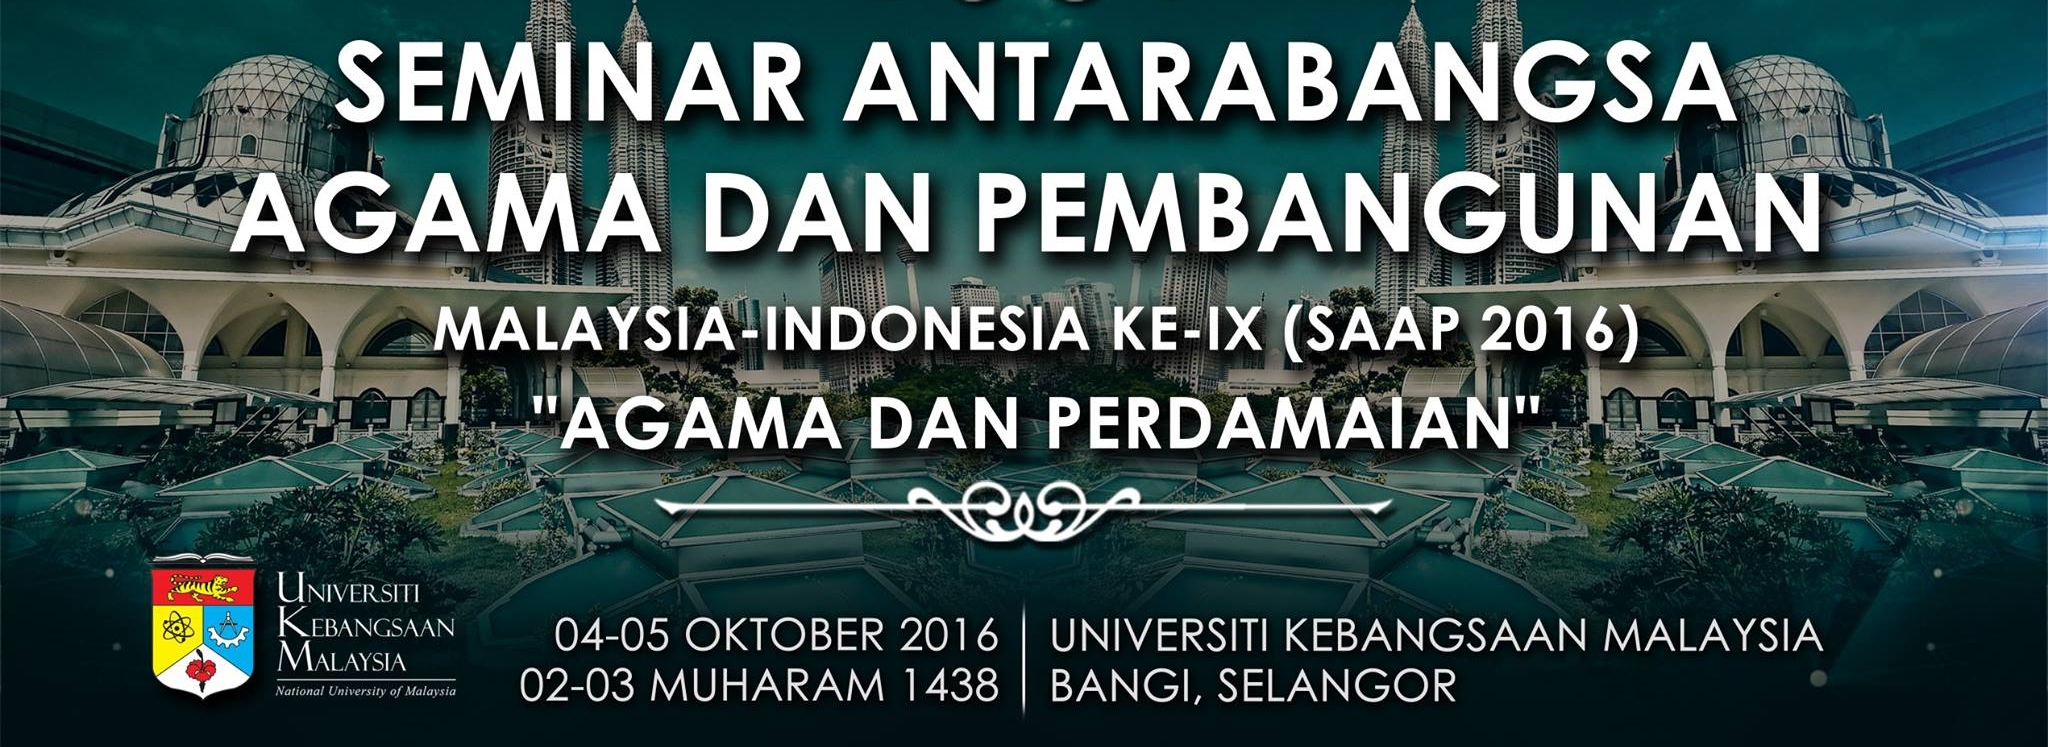 SEMINAR ANTARABANGSA AGAMA DAN PEMBANGUNAN IX – 2016 (IX International Seminar on Religion and Peace – 2016)